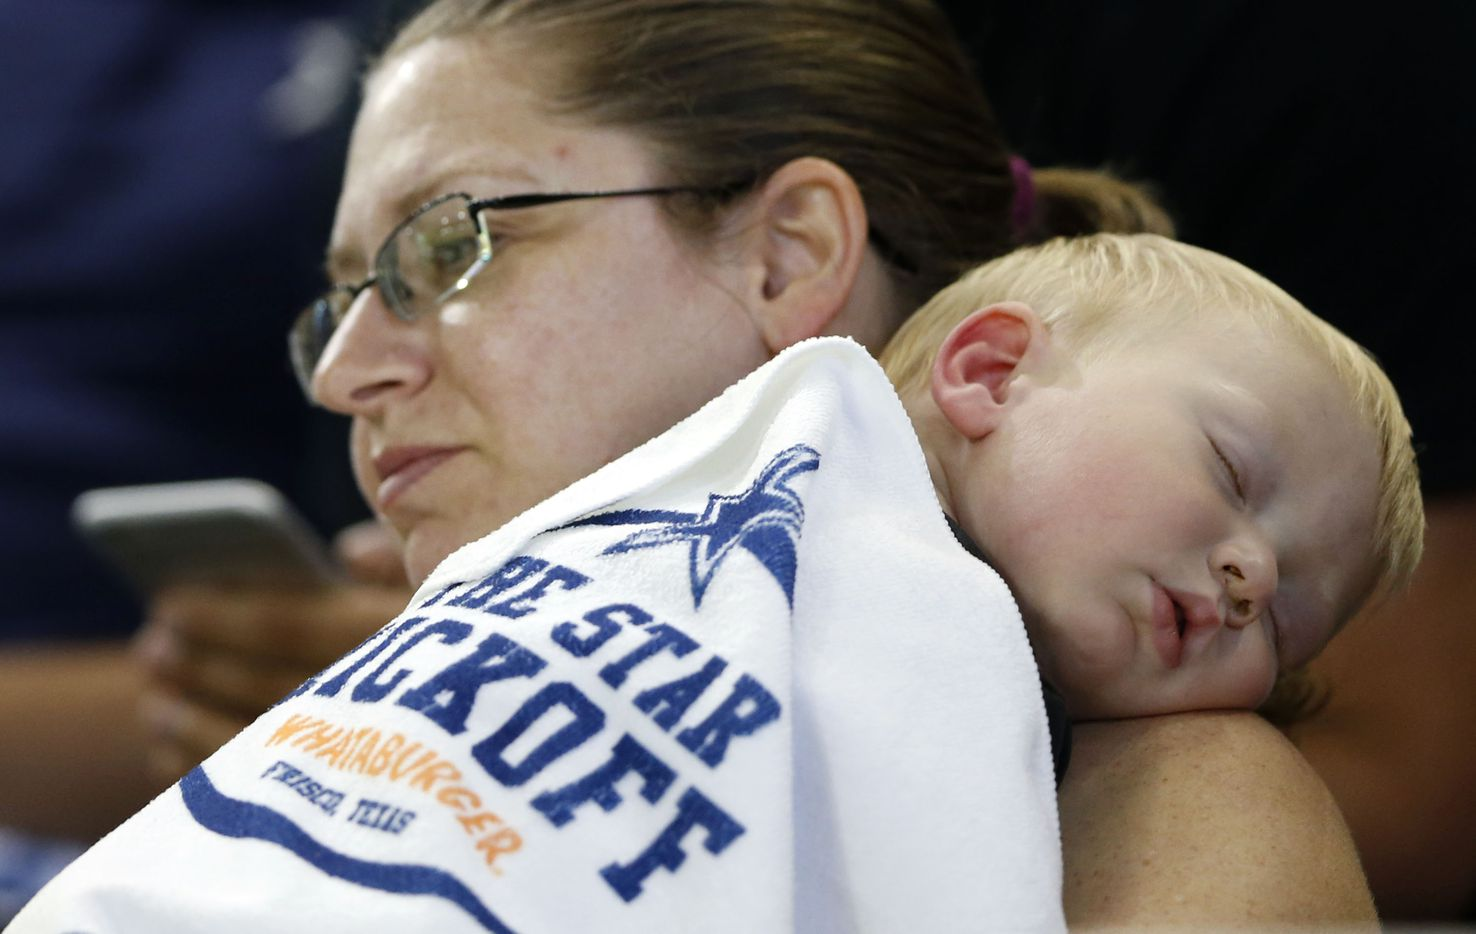 18-month old Steven Ritchie is sound asleep as he is held by his mother Christie Ritchie of Frisco during a game between Lone Star High School and Heritage High School at The Star in Frisco on Saturday, August 27, 2016. (Vernon Bryant/The Dallas Morning News)